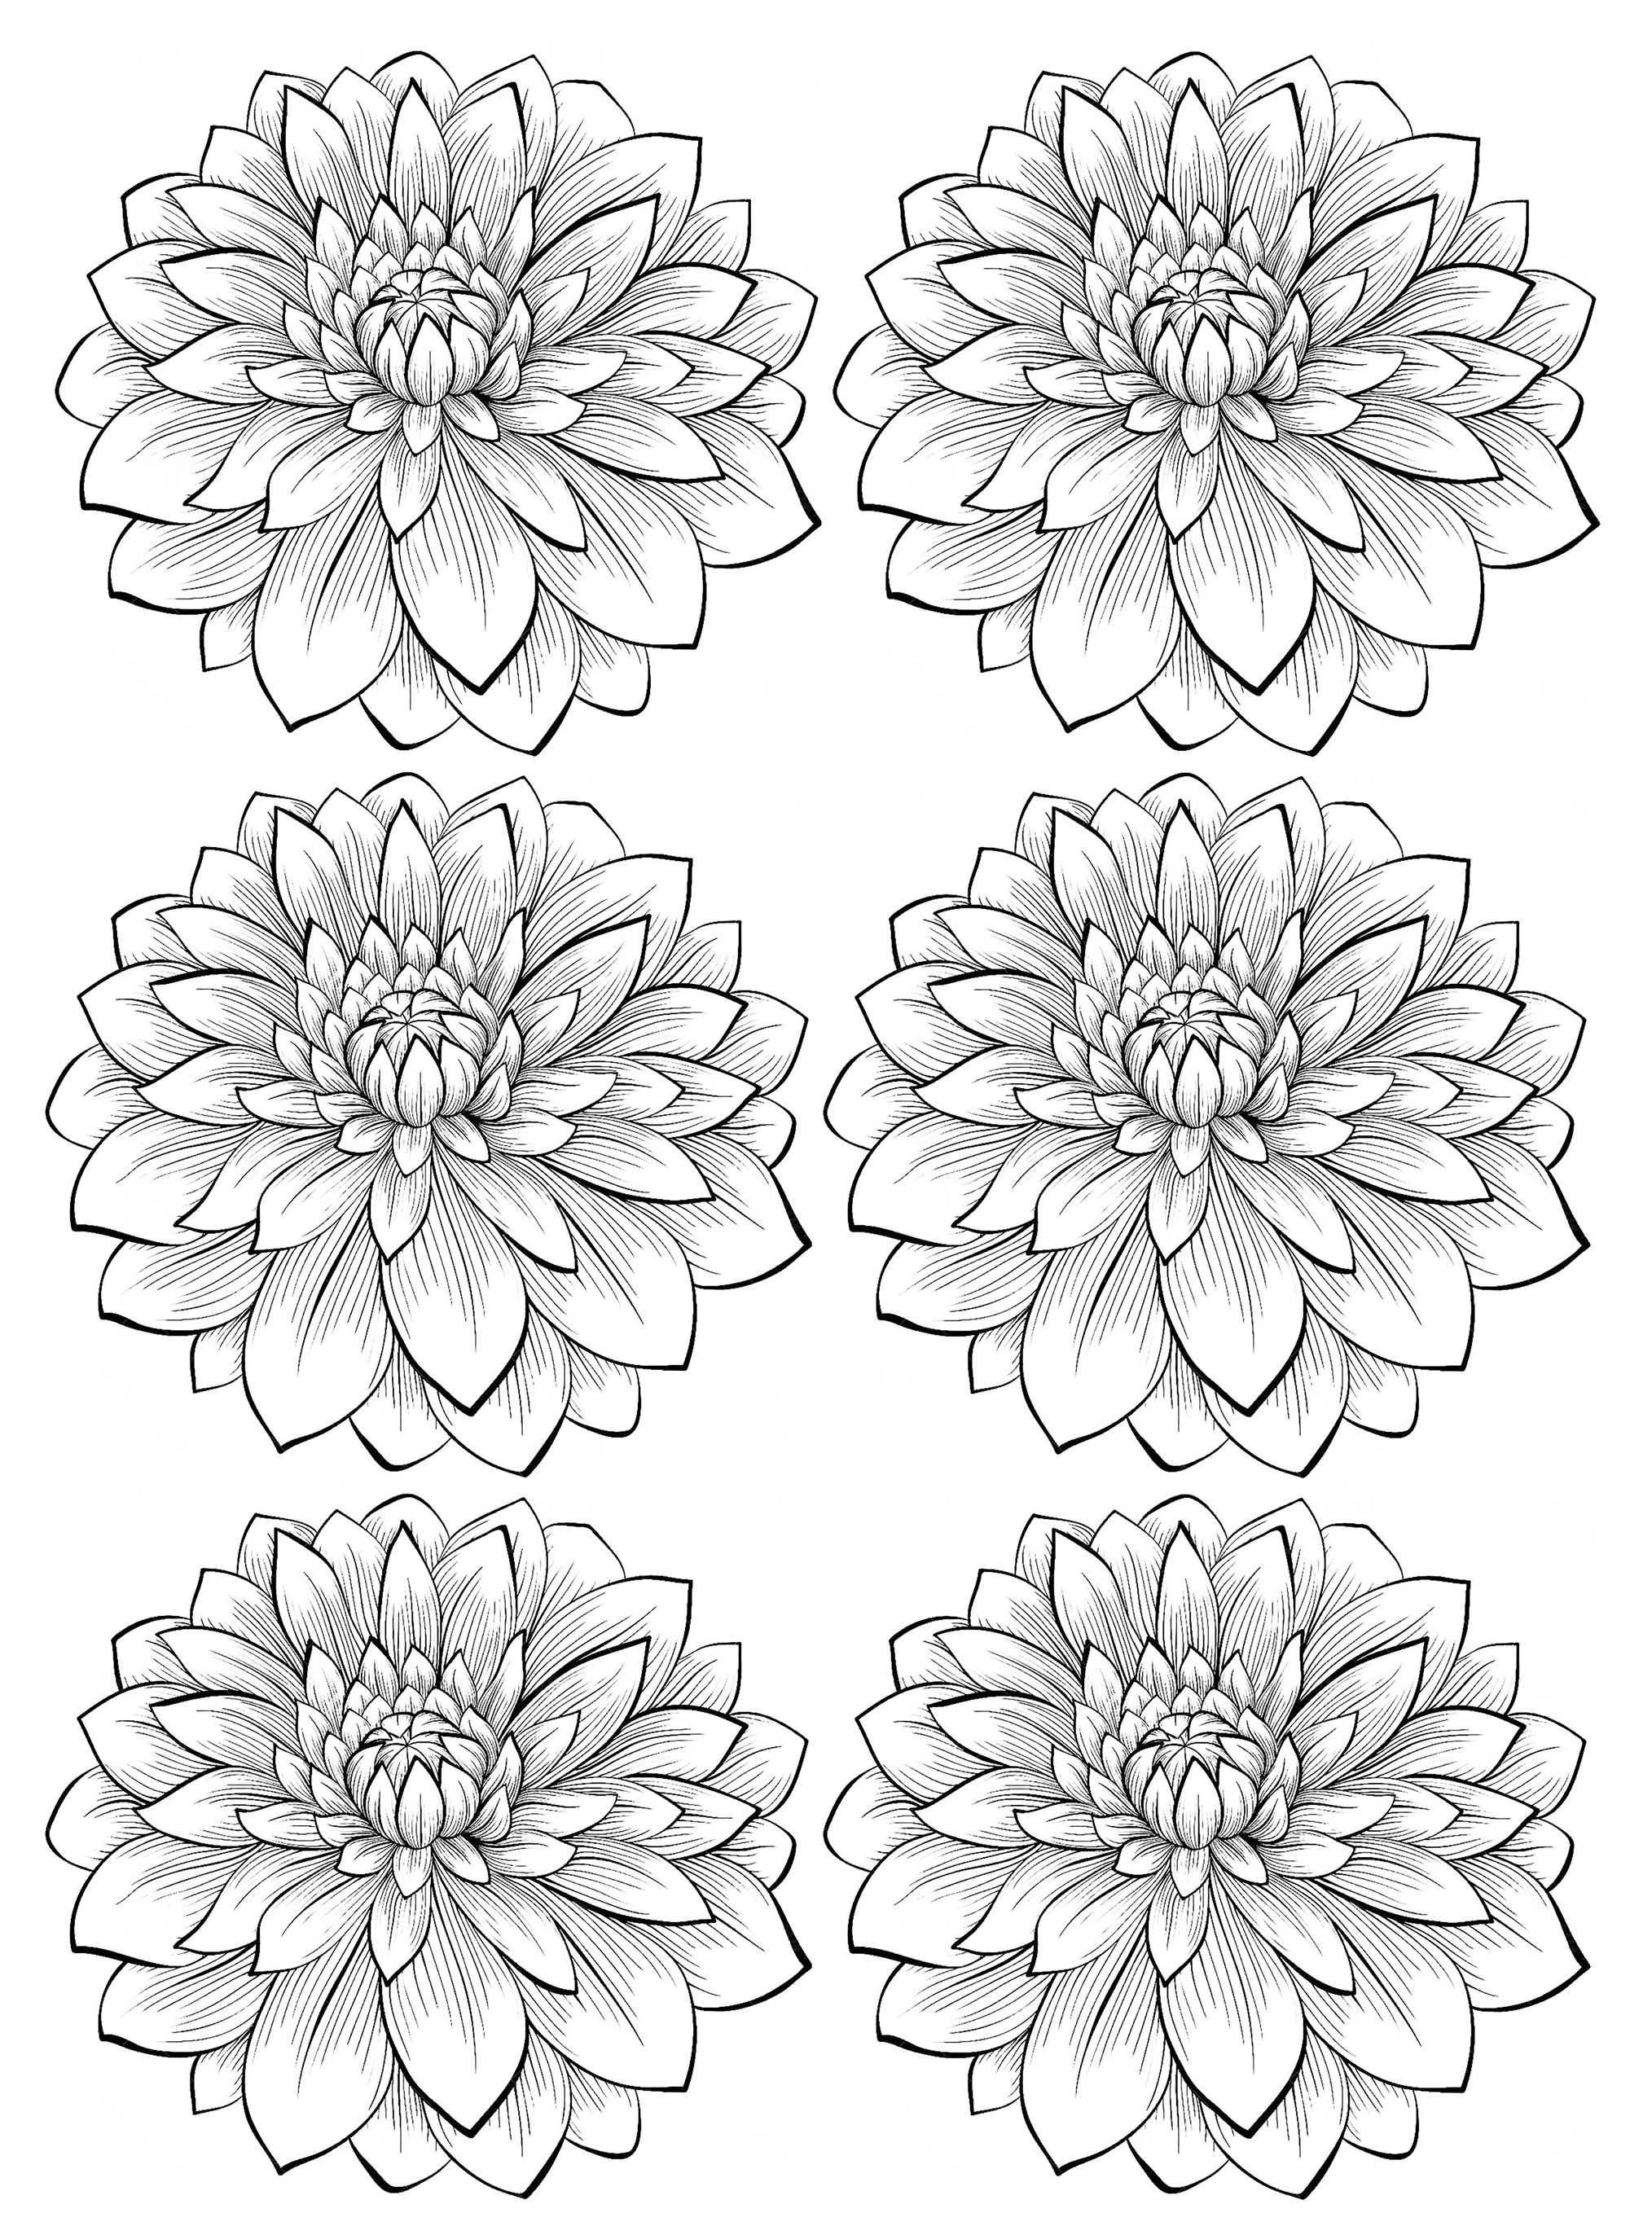 coloring pages for adults flowers flower coloring pages for adults adults flowers coloring for pages